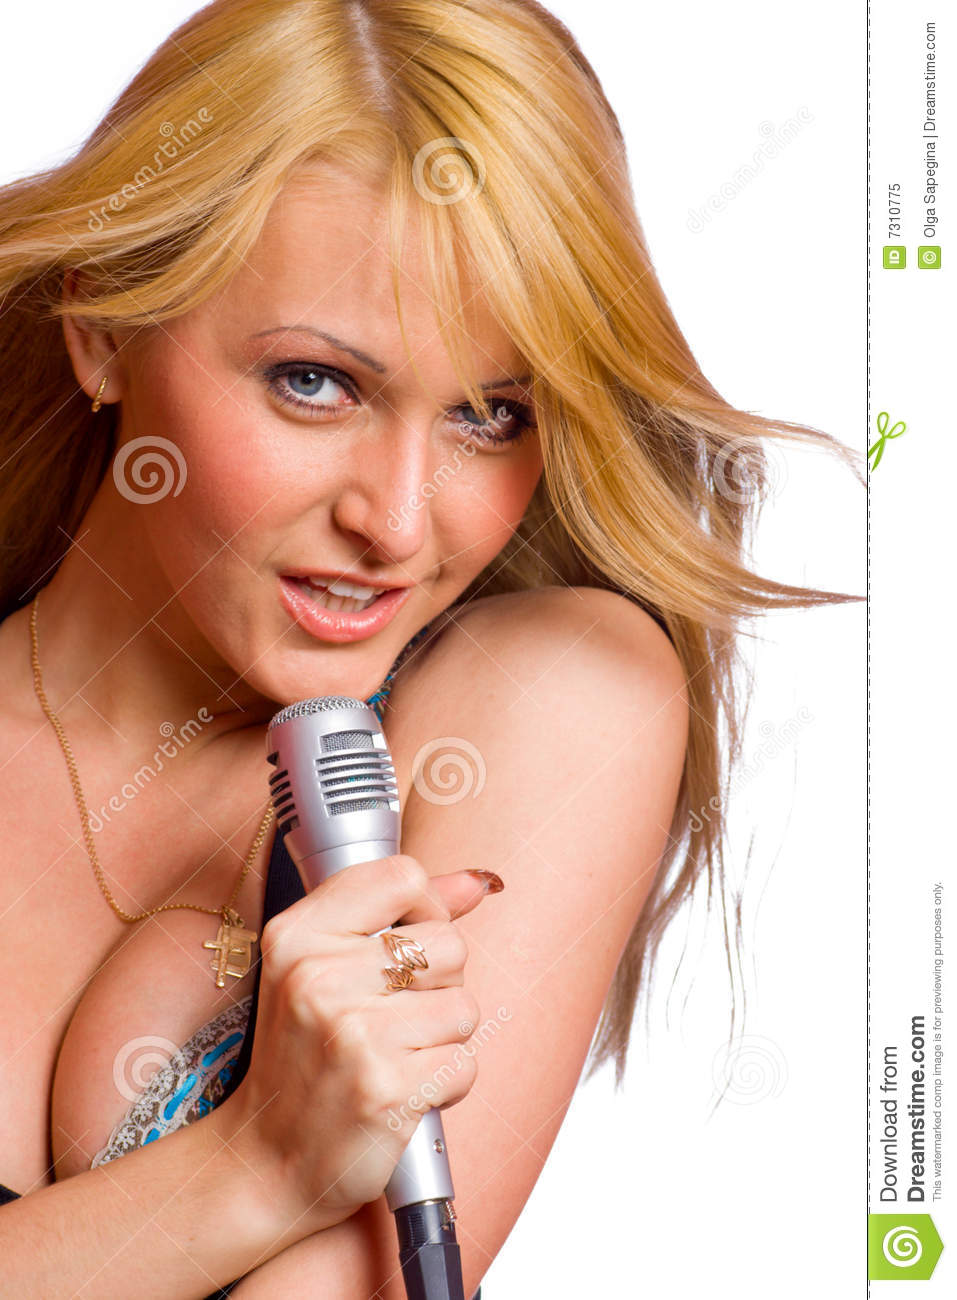 Girl Singing Royalty Free Stock Photo - Image: 7310775